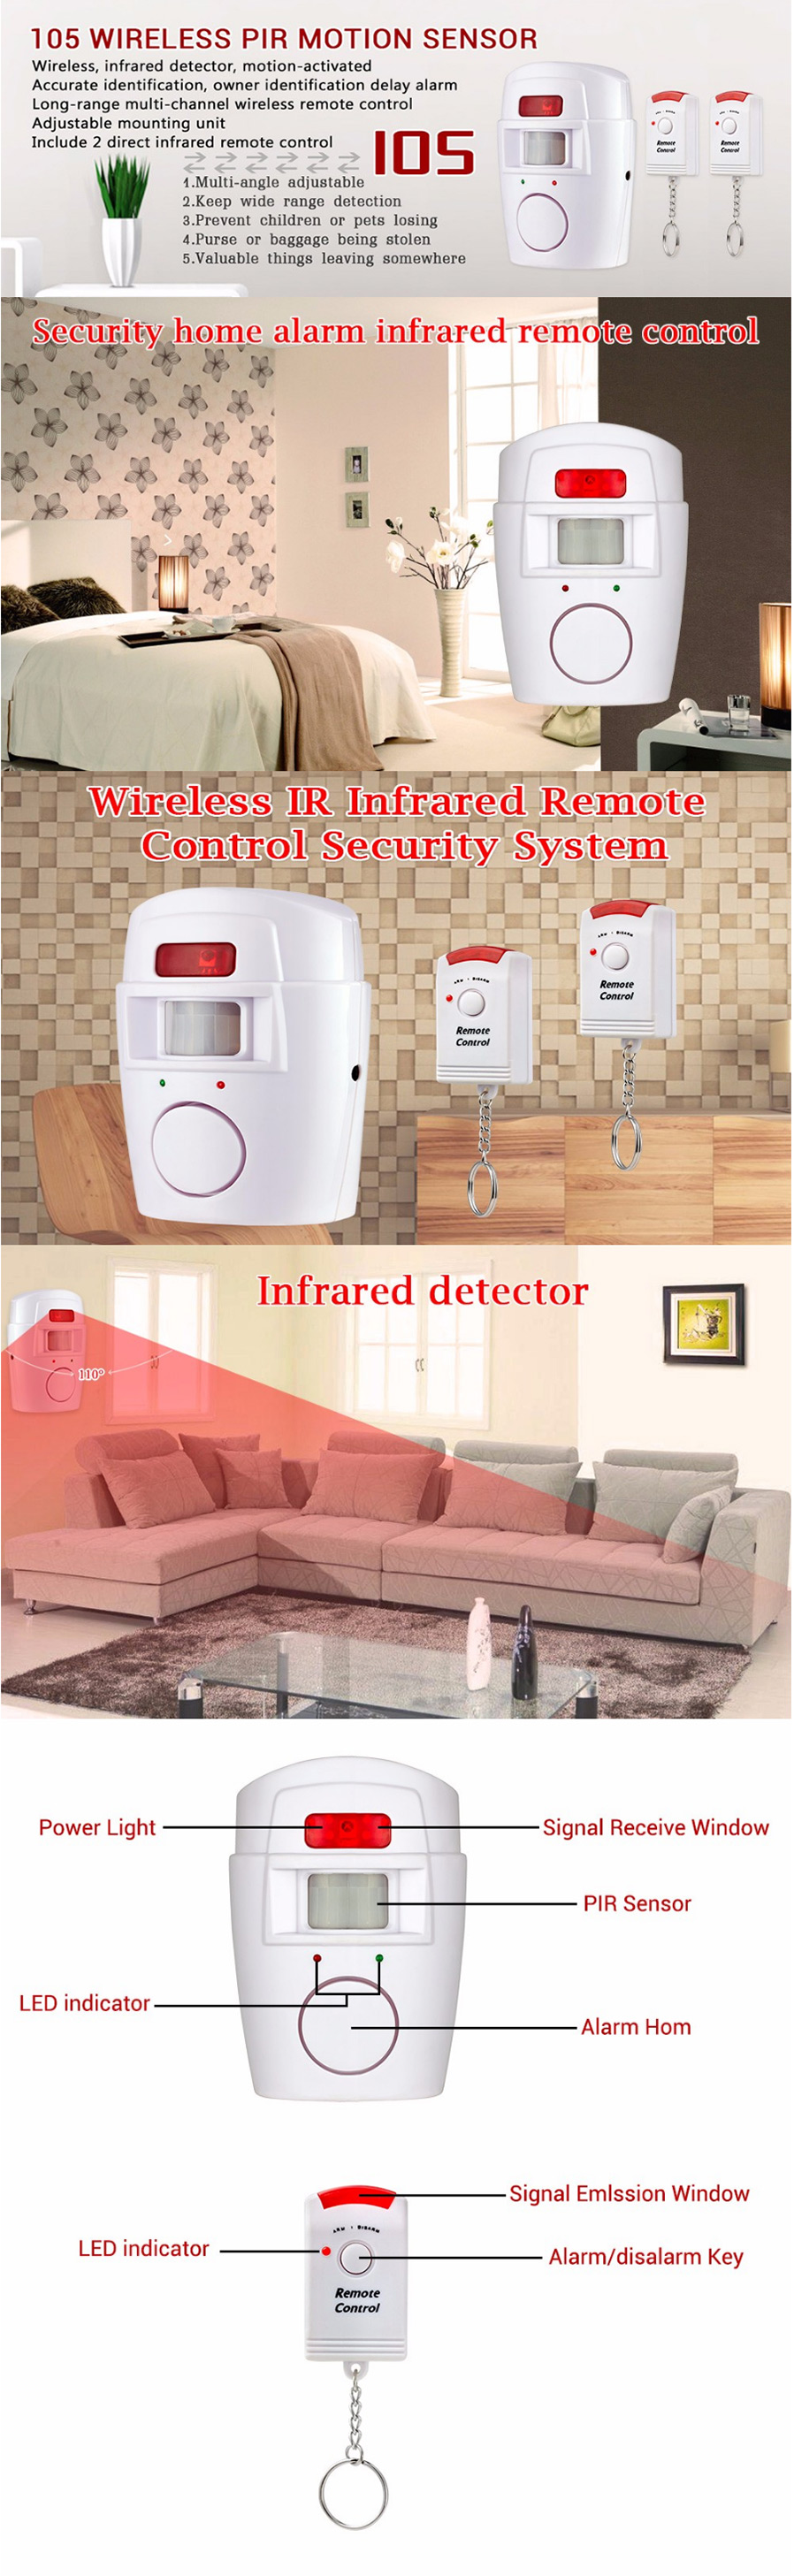 Home Pir Mp Alert Infrared Sensor Anti Theft Motion Detector White Arduino Night Security Alarm With Note 10 Meters Range For Detection After You Arm The System When Is Triggeredit Will Sound 40 Seconds